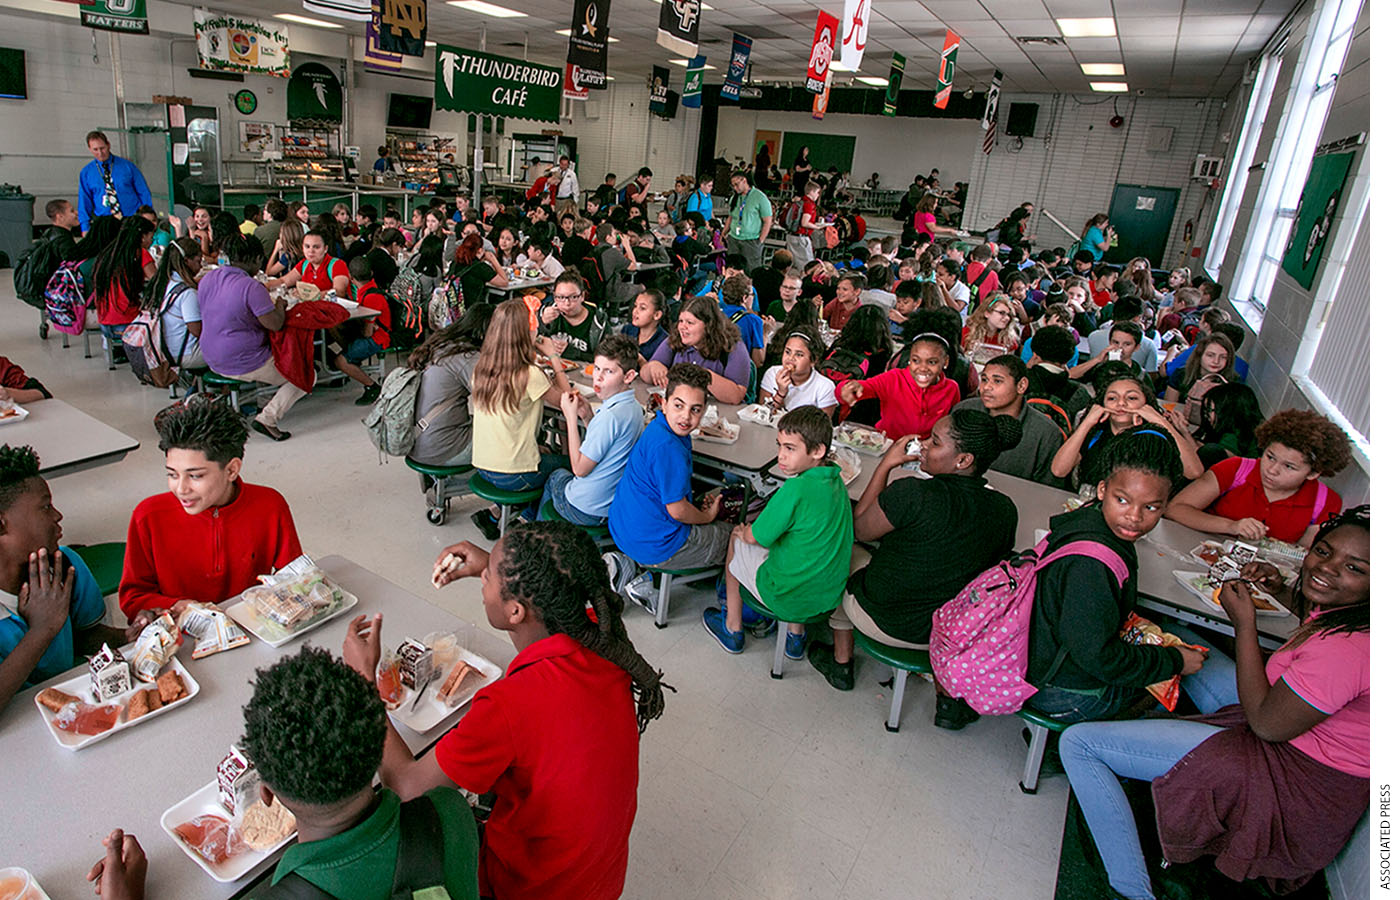 There's no imperative to maintain a remote lunch and recess schedule similar to an in-person one built around school building logistics such as limited cafeteria seating.